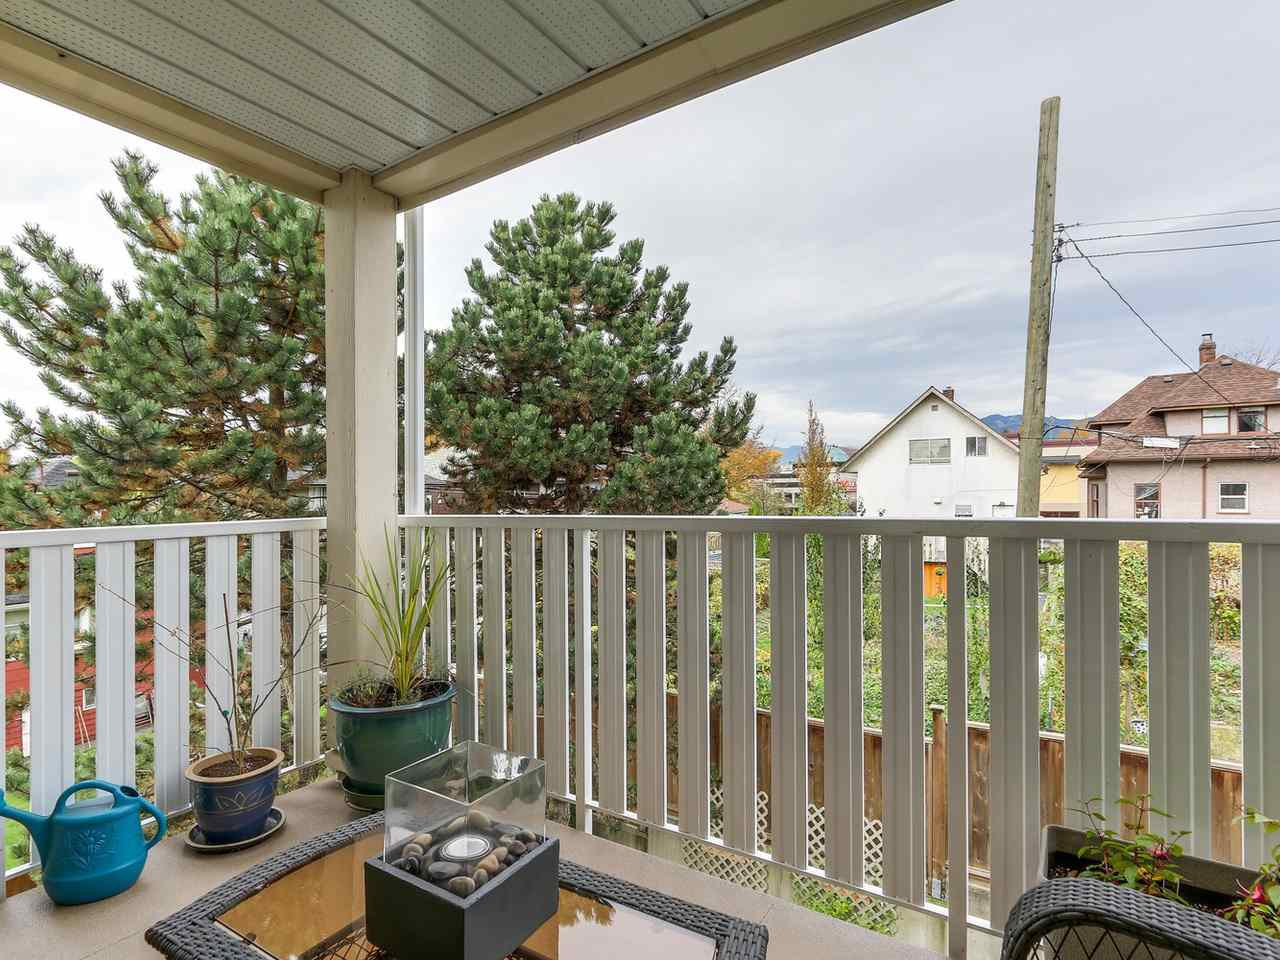 """Photo 7: Photos: 301 1623 E 2ND Avenue in Vancouver: Grandview VE Condo for sale in """"GRANDVIEW MANOR"""" (Vancouver East)  : MLS®# R2122830"""